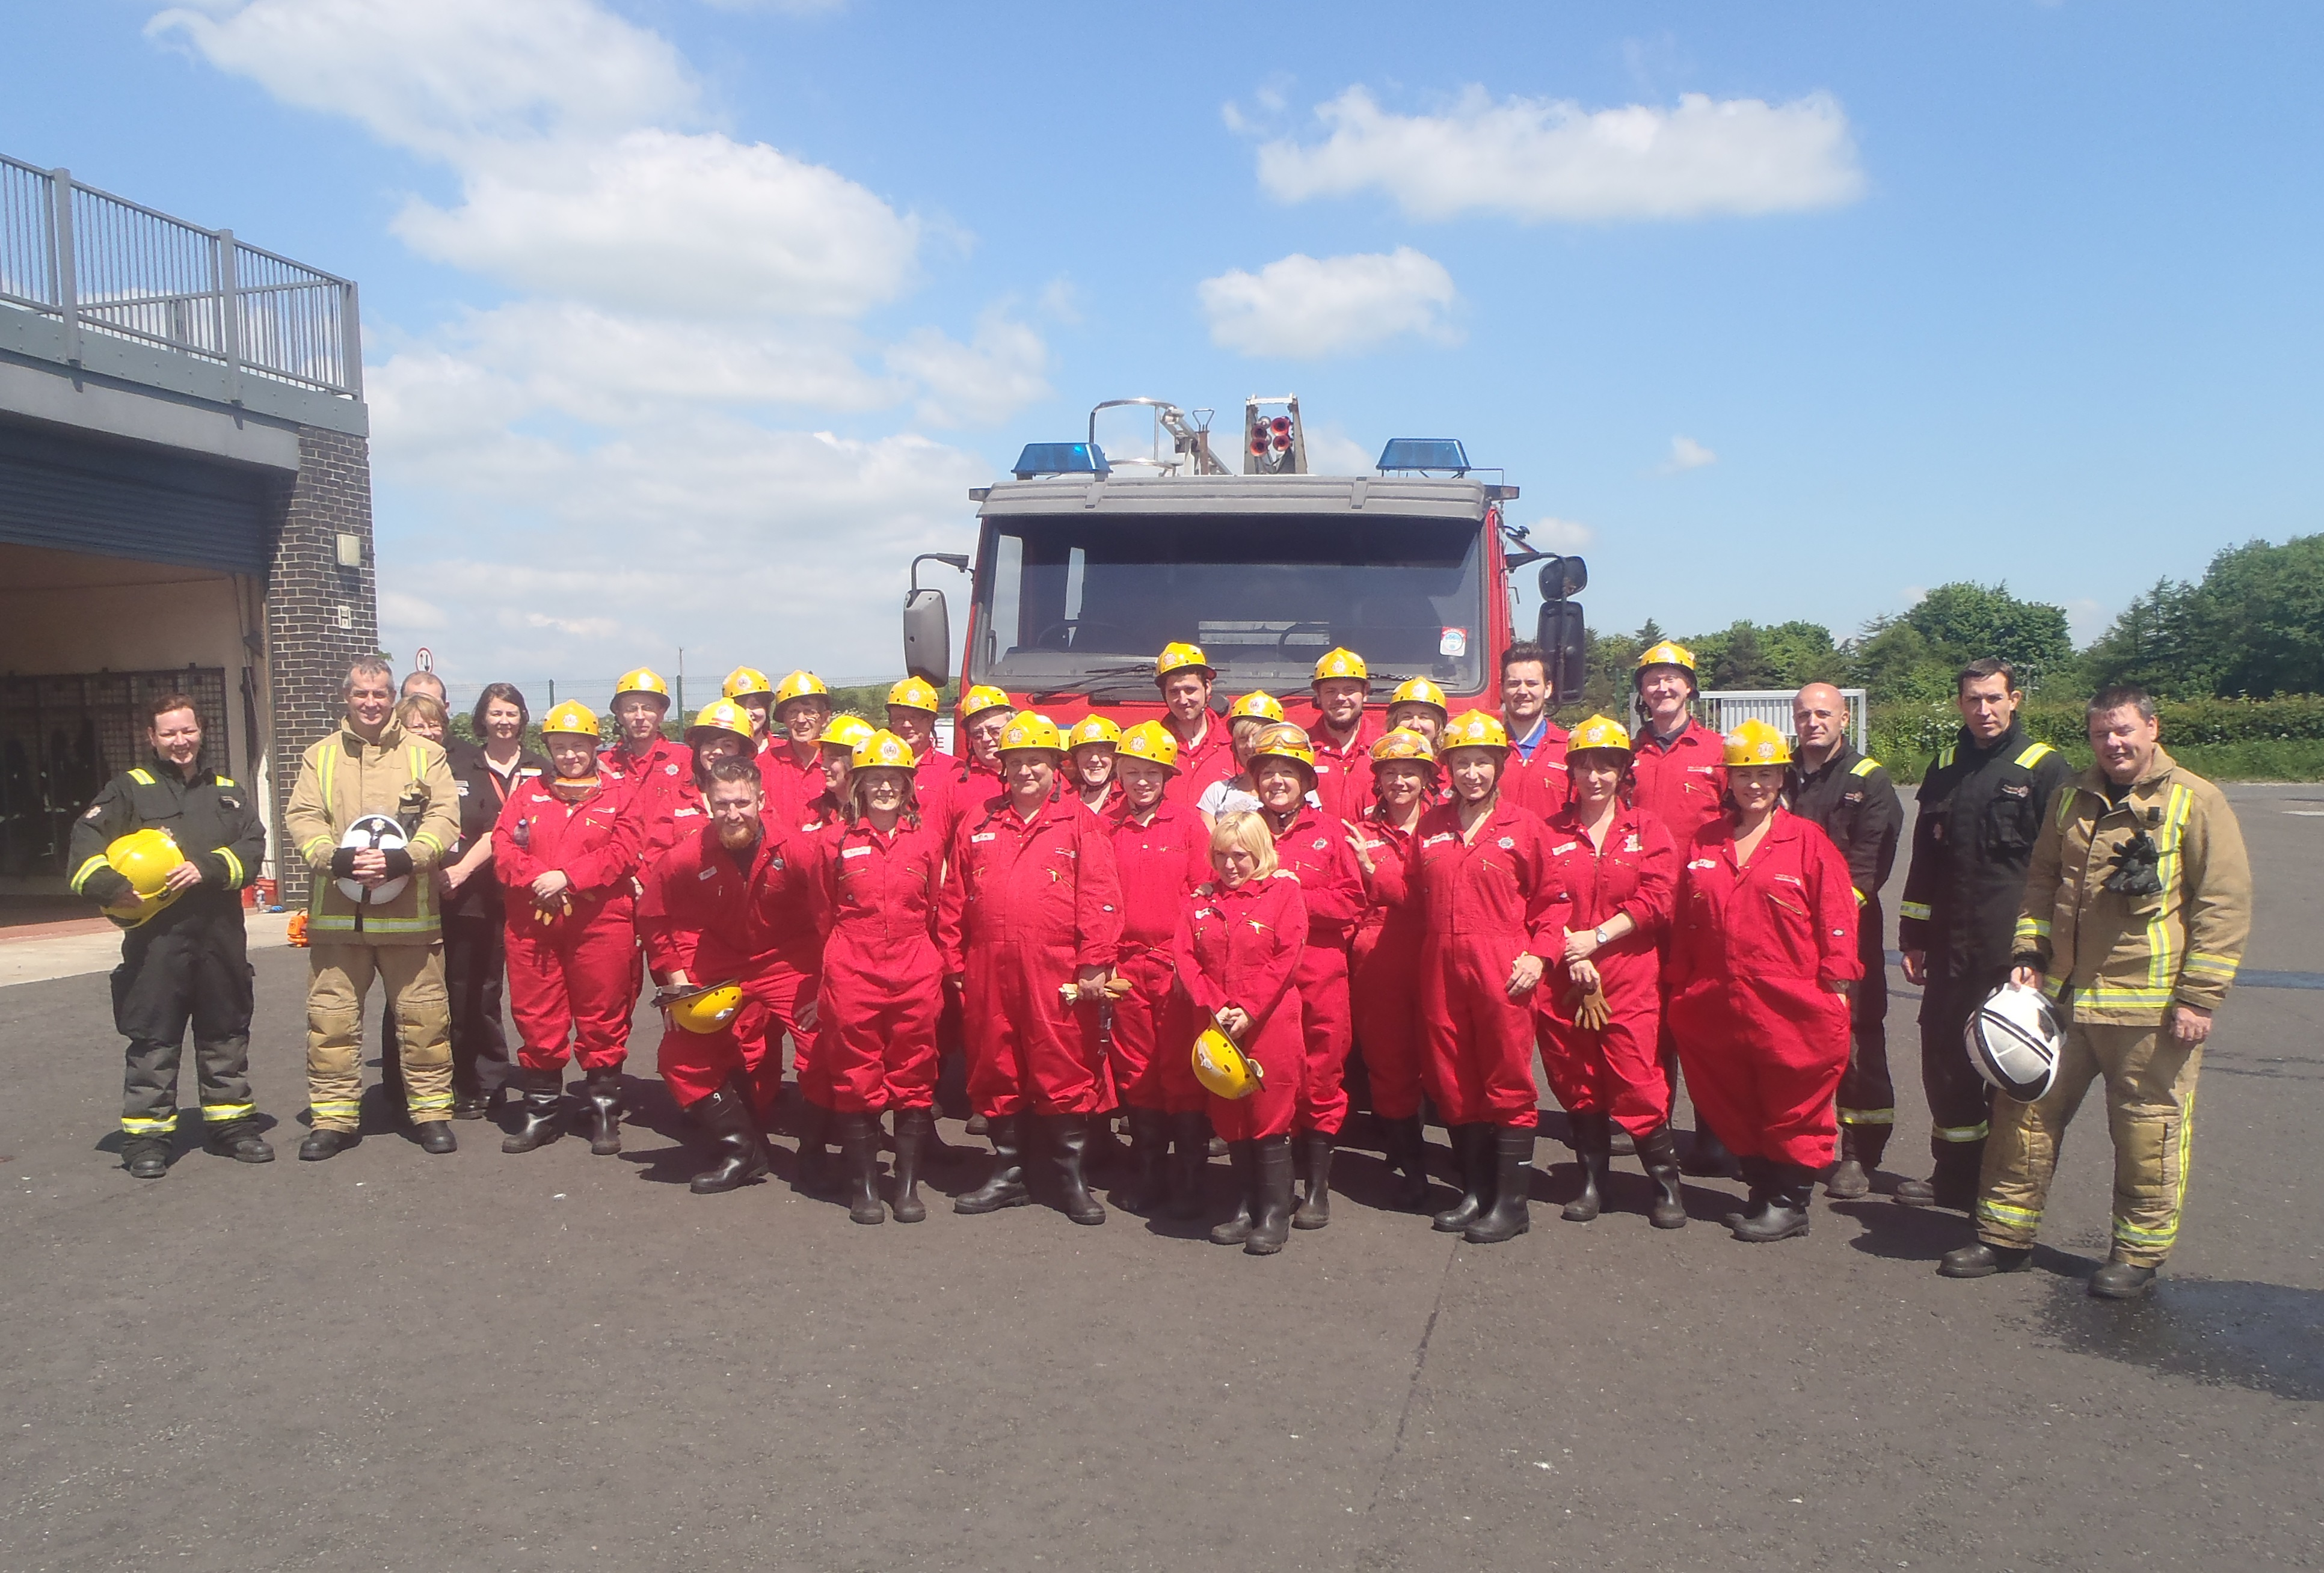 Ayrshire firefighters welcome volunteers in partnership initiative